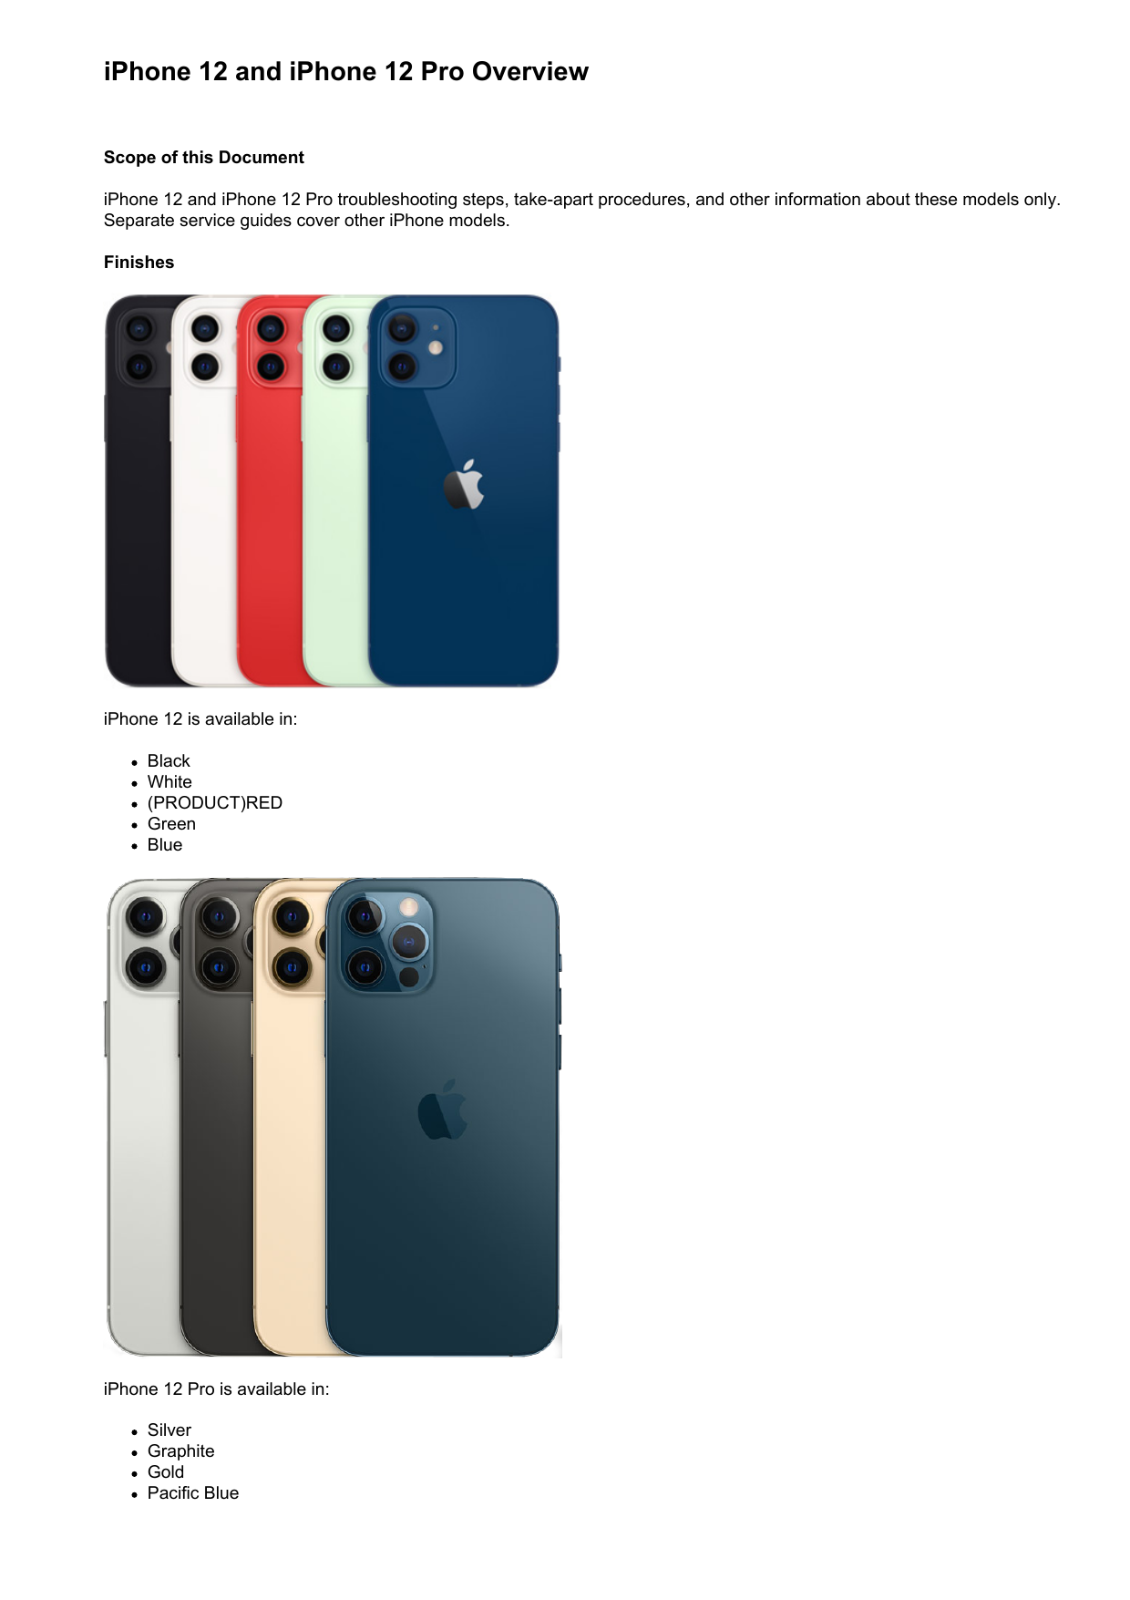 как выглядит Apple iPhone 12 and iPhone 12 Pro Technician Guide Service Manual фото